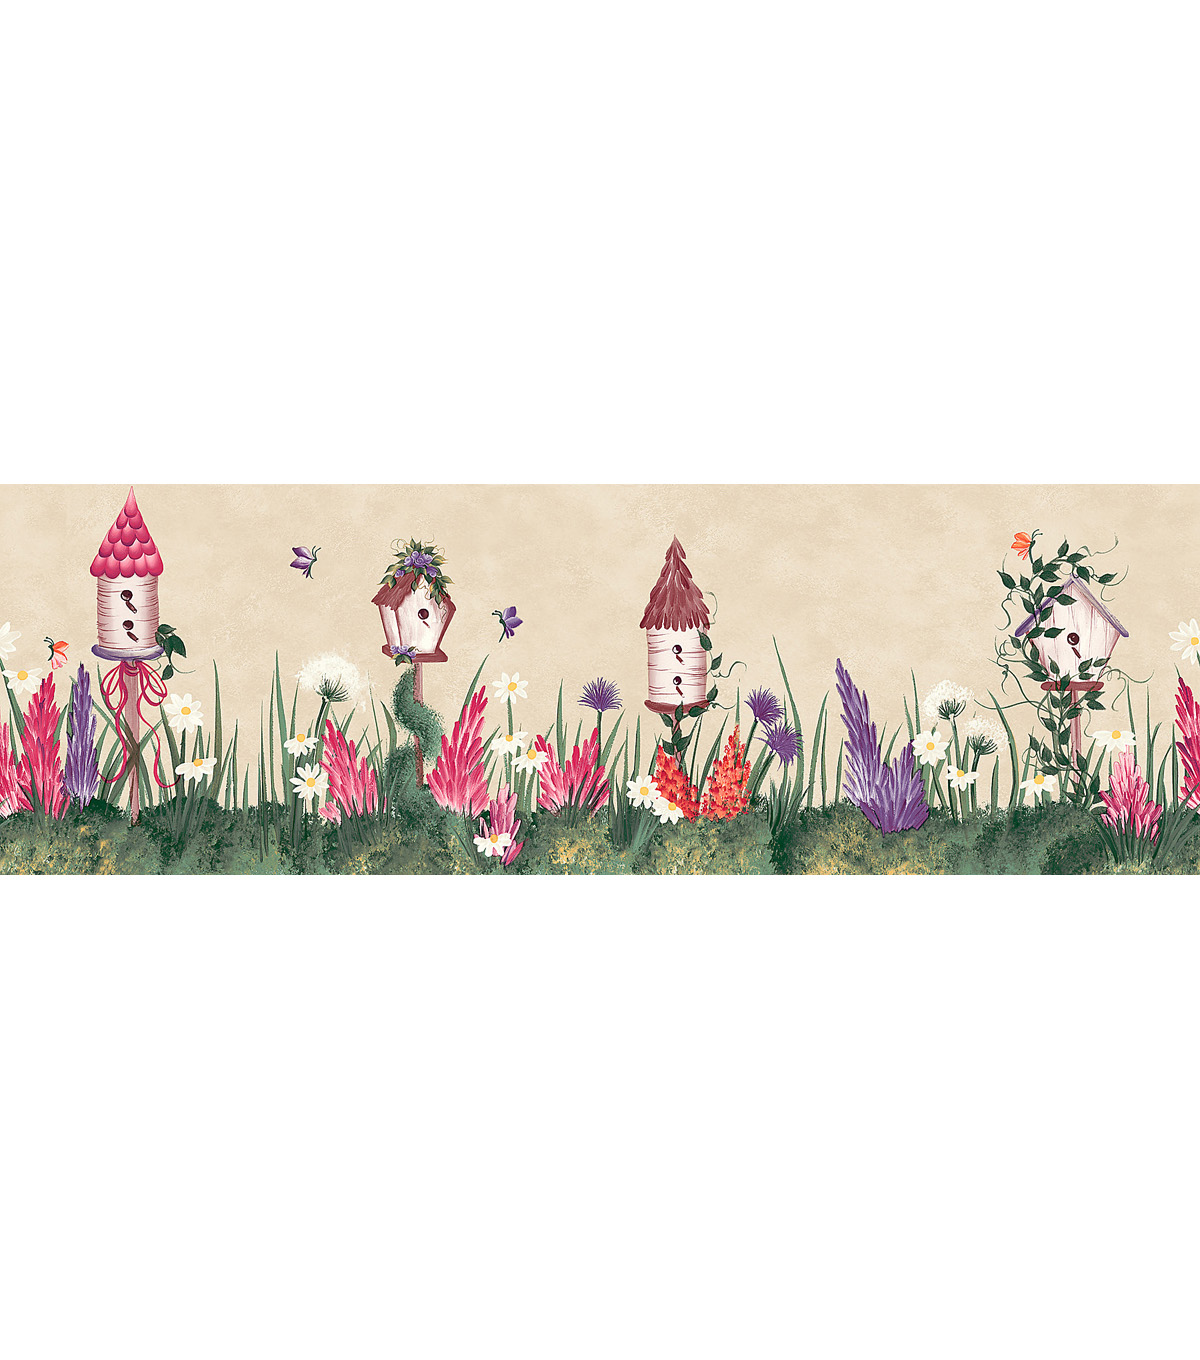 Bird House Floral Wallpaper Border Multicolor SampleBird House Floral 1200x1360